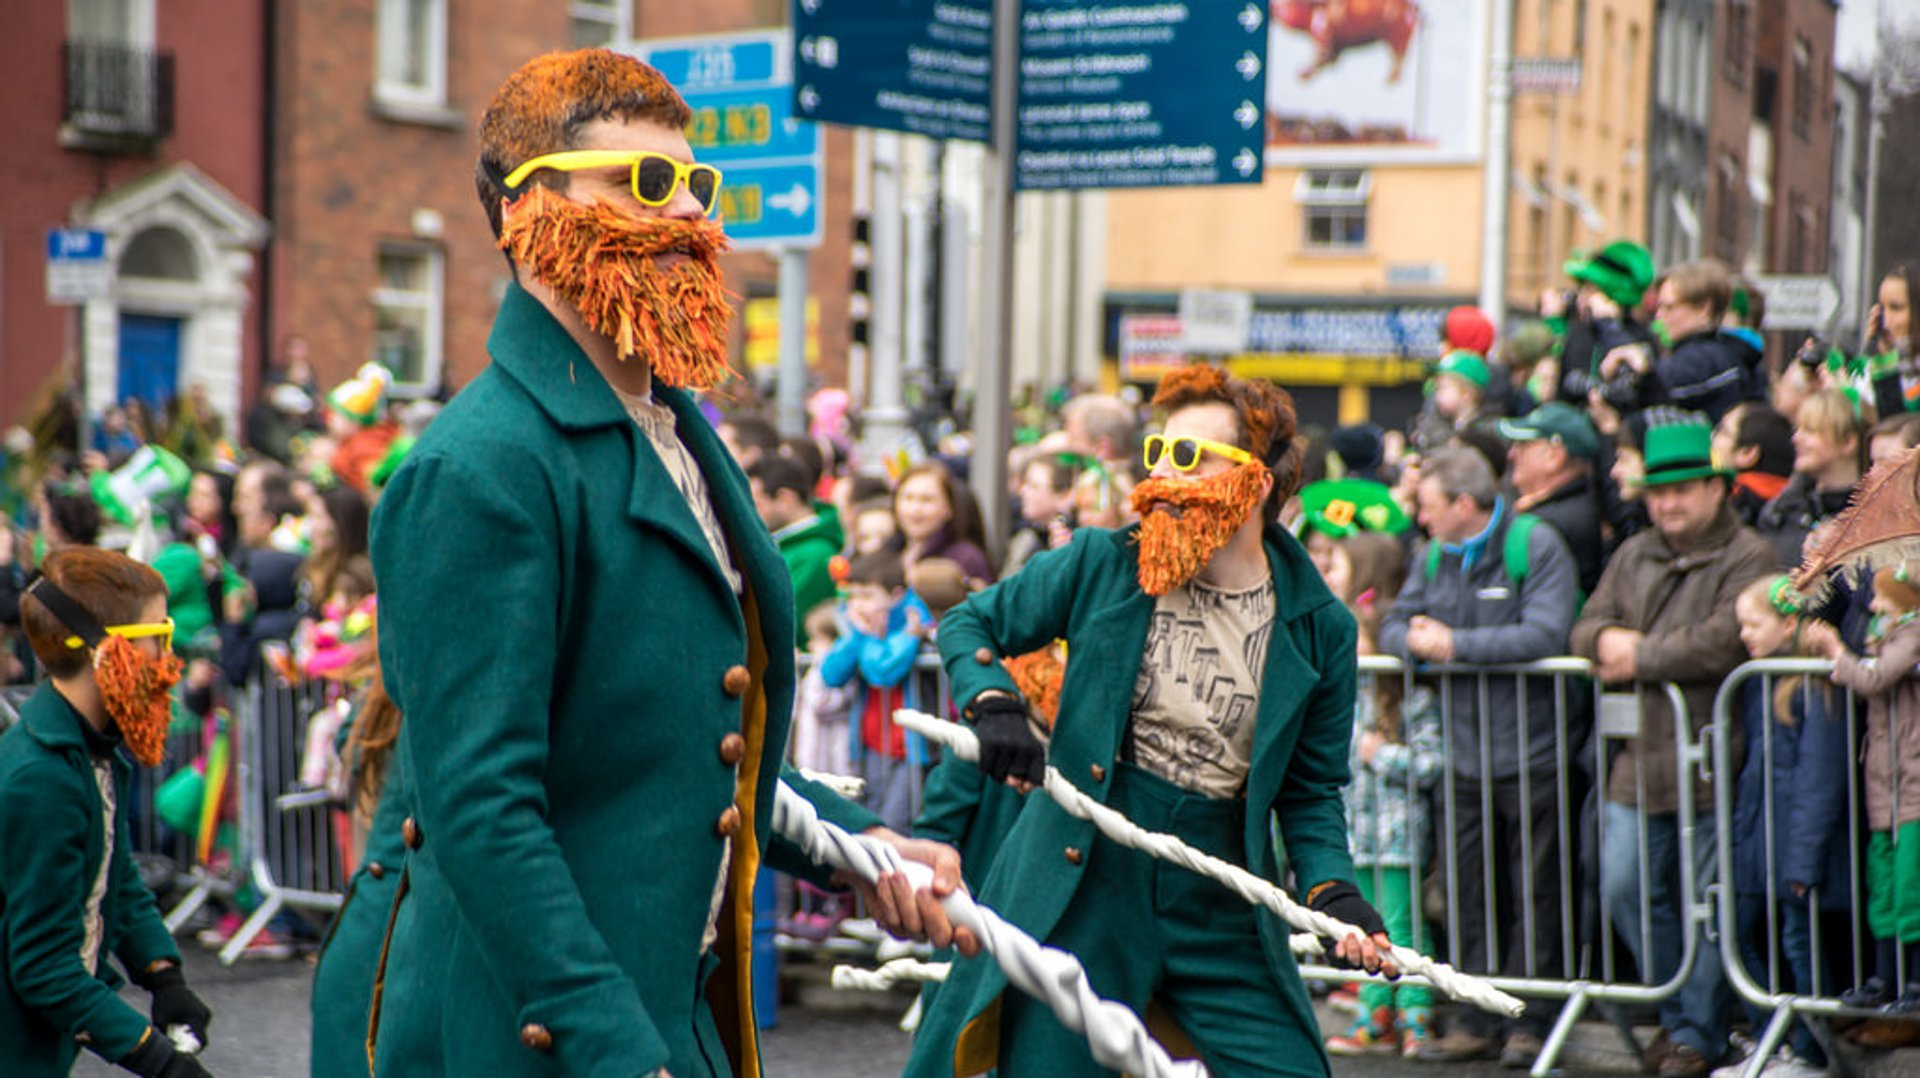 St. Patrick's Day in Ireland 2019 - Best Time